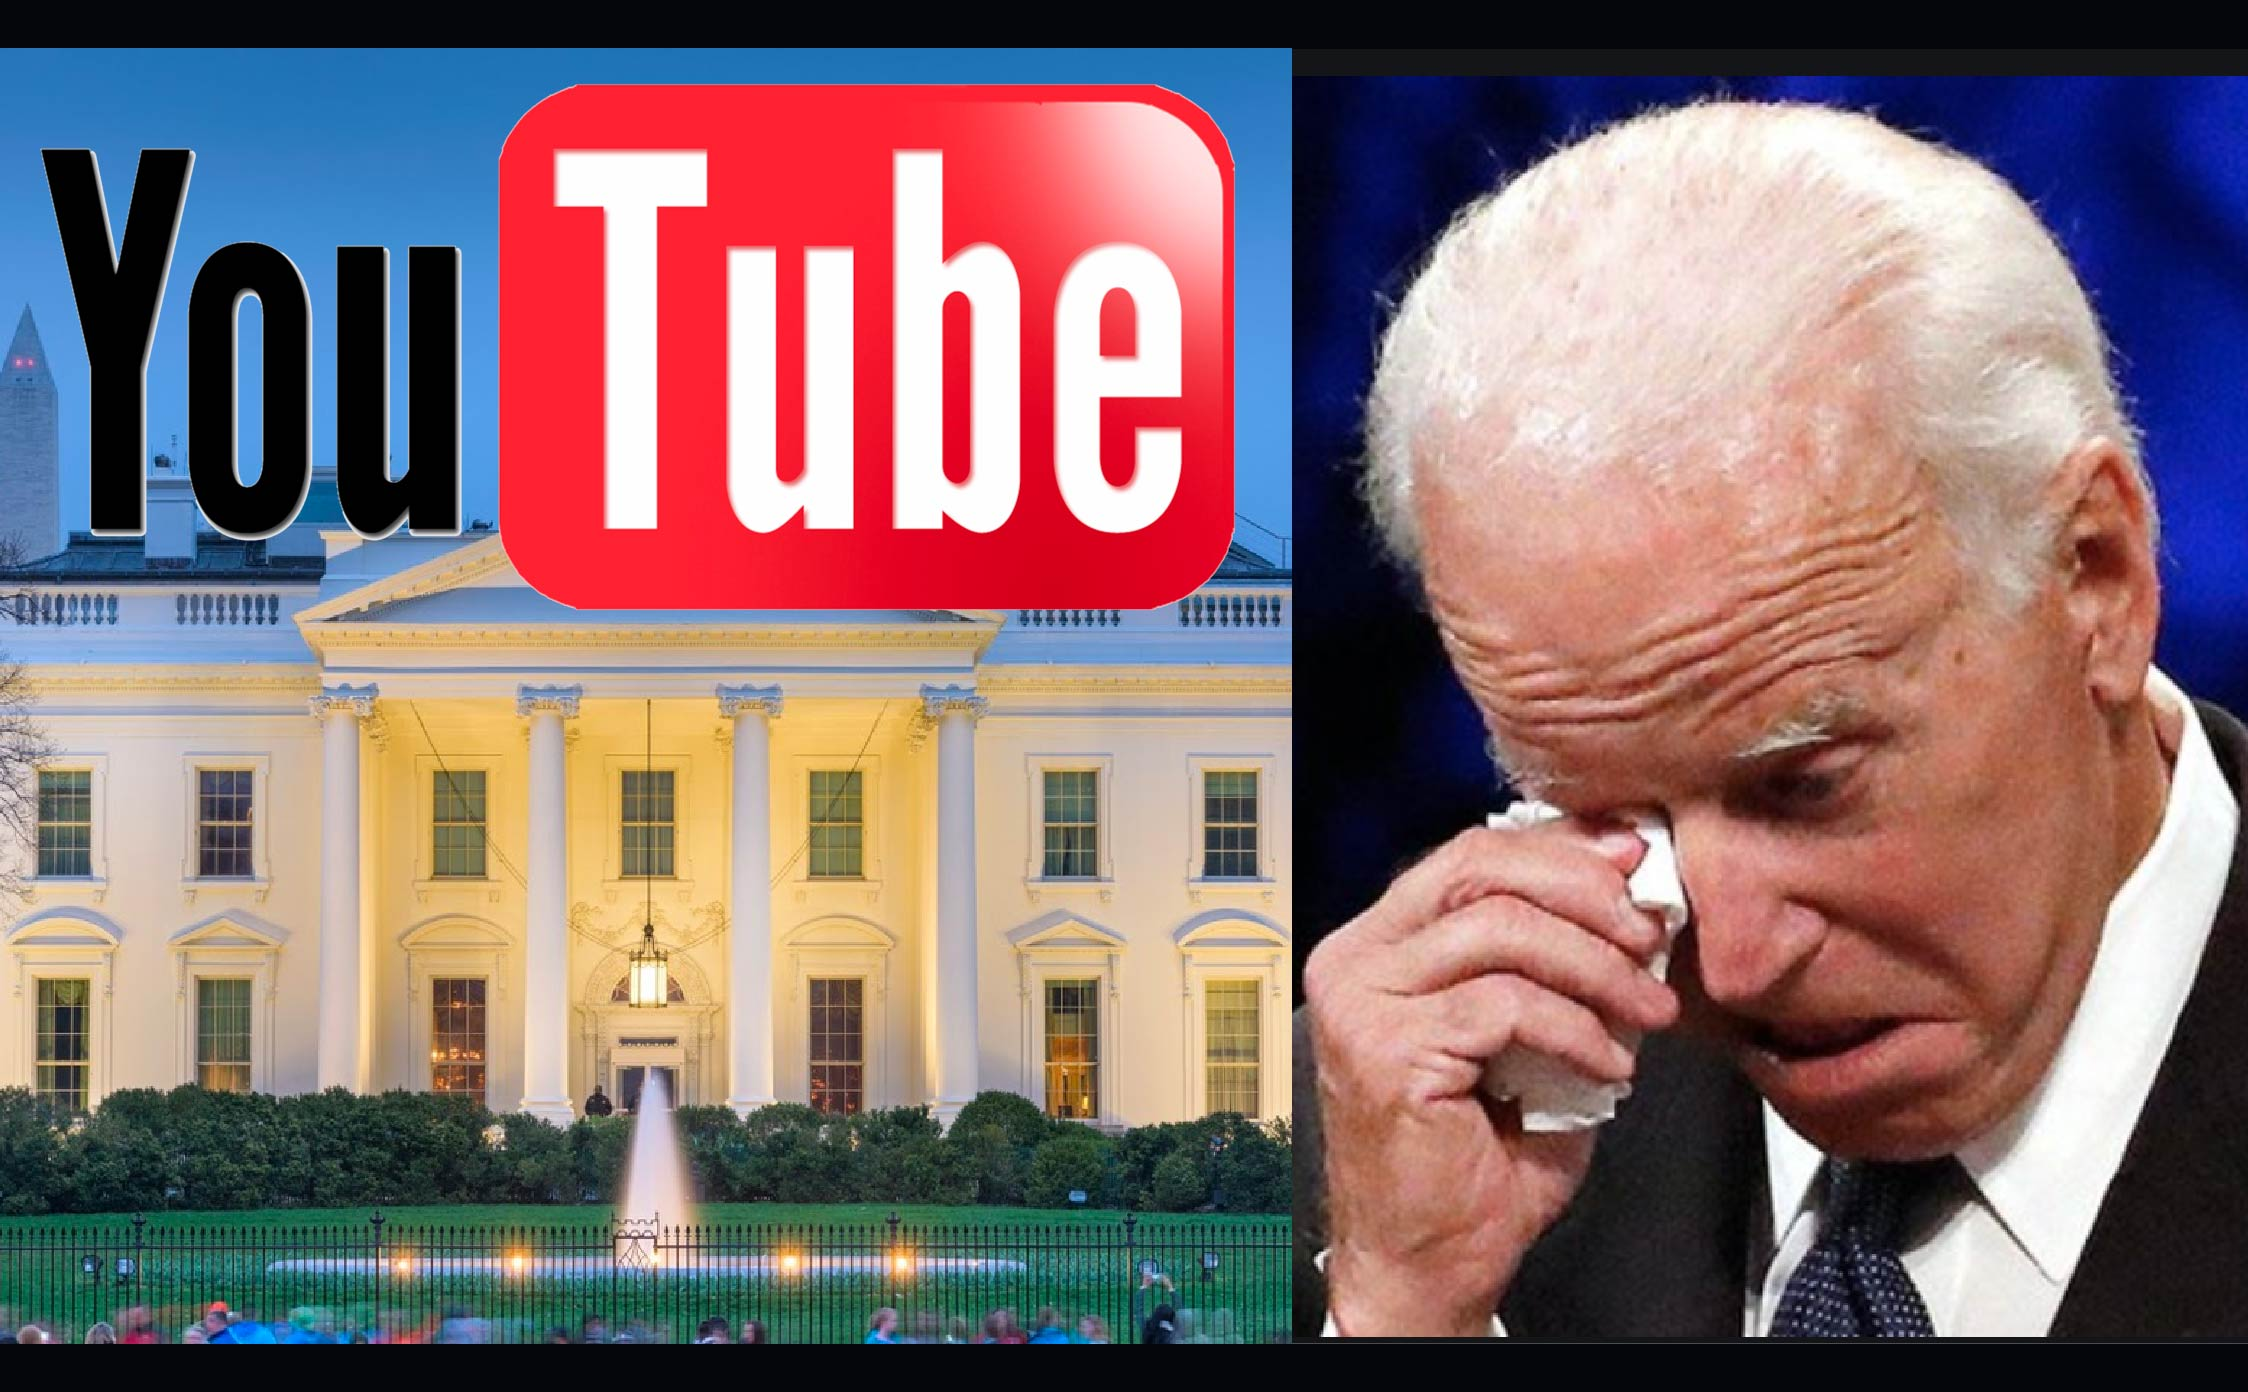 New Website Tracks WH YouTube Channel And Exposes What Big Tech Doesn't Want You to See